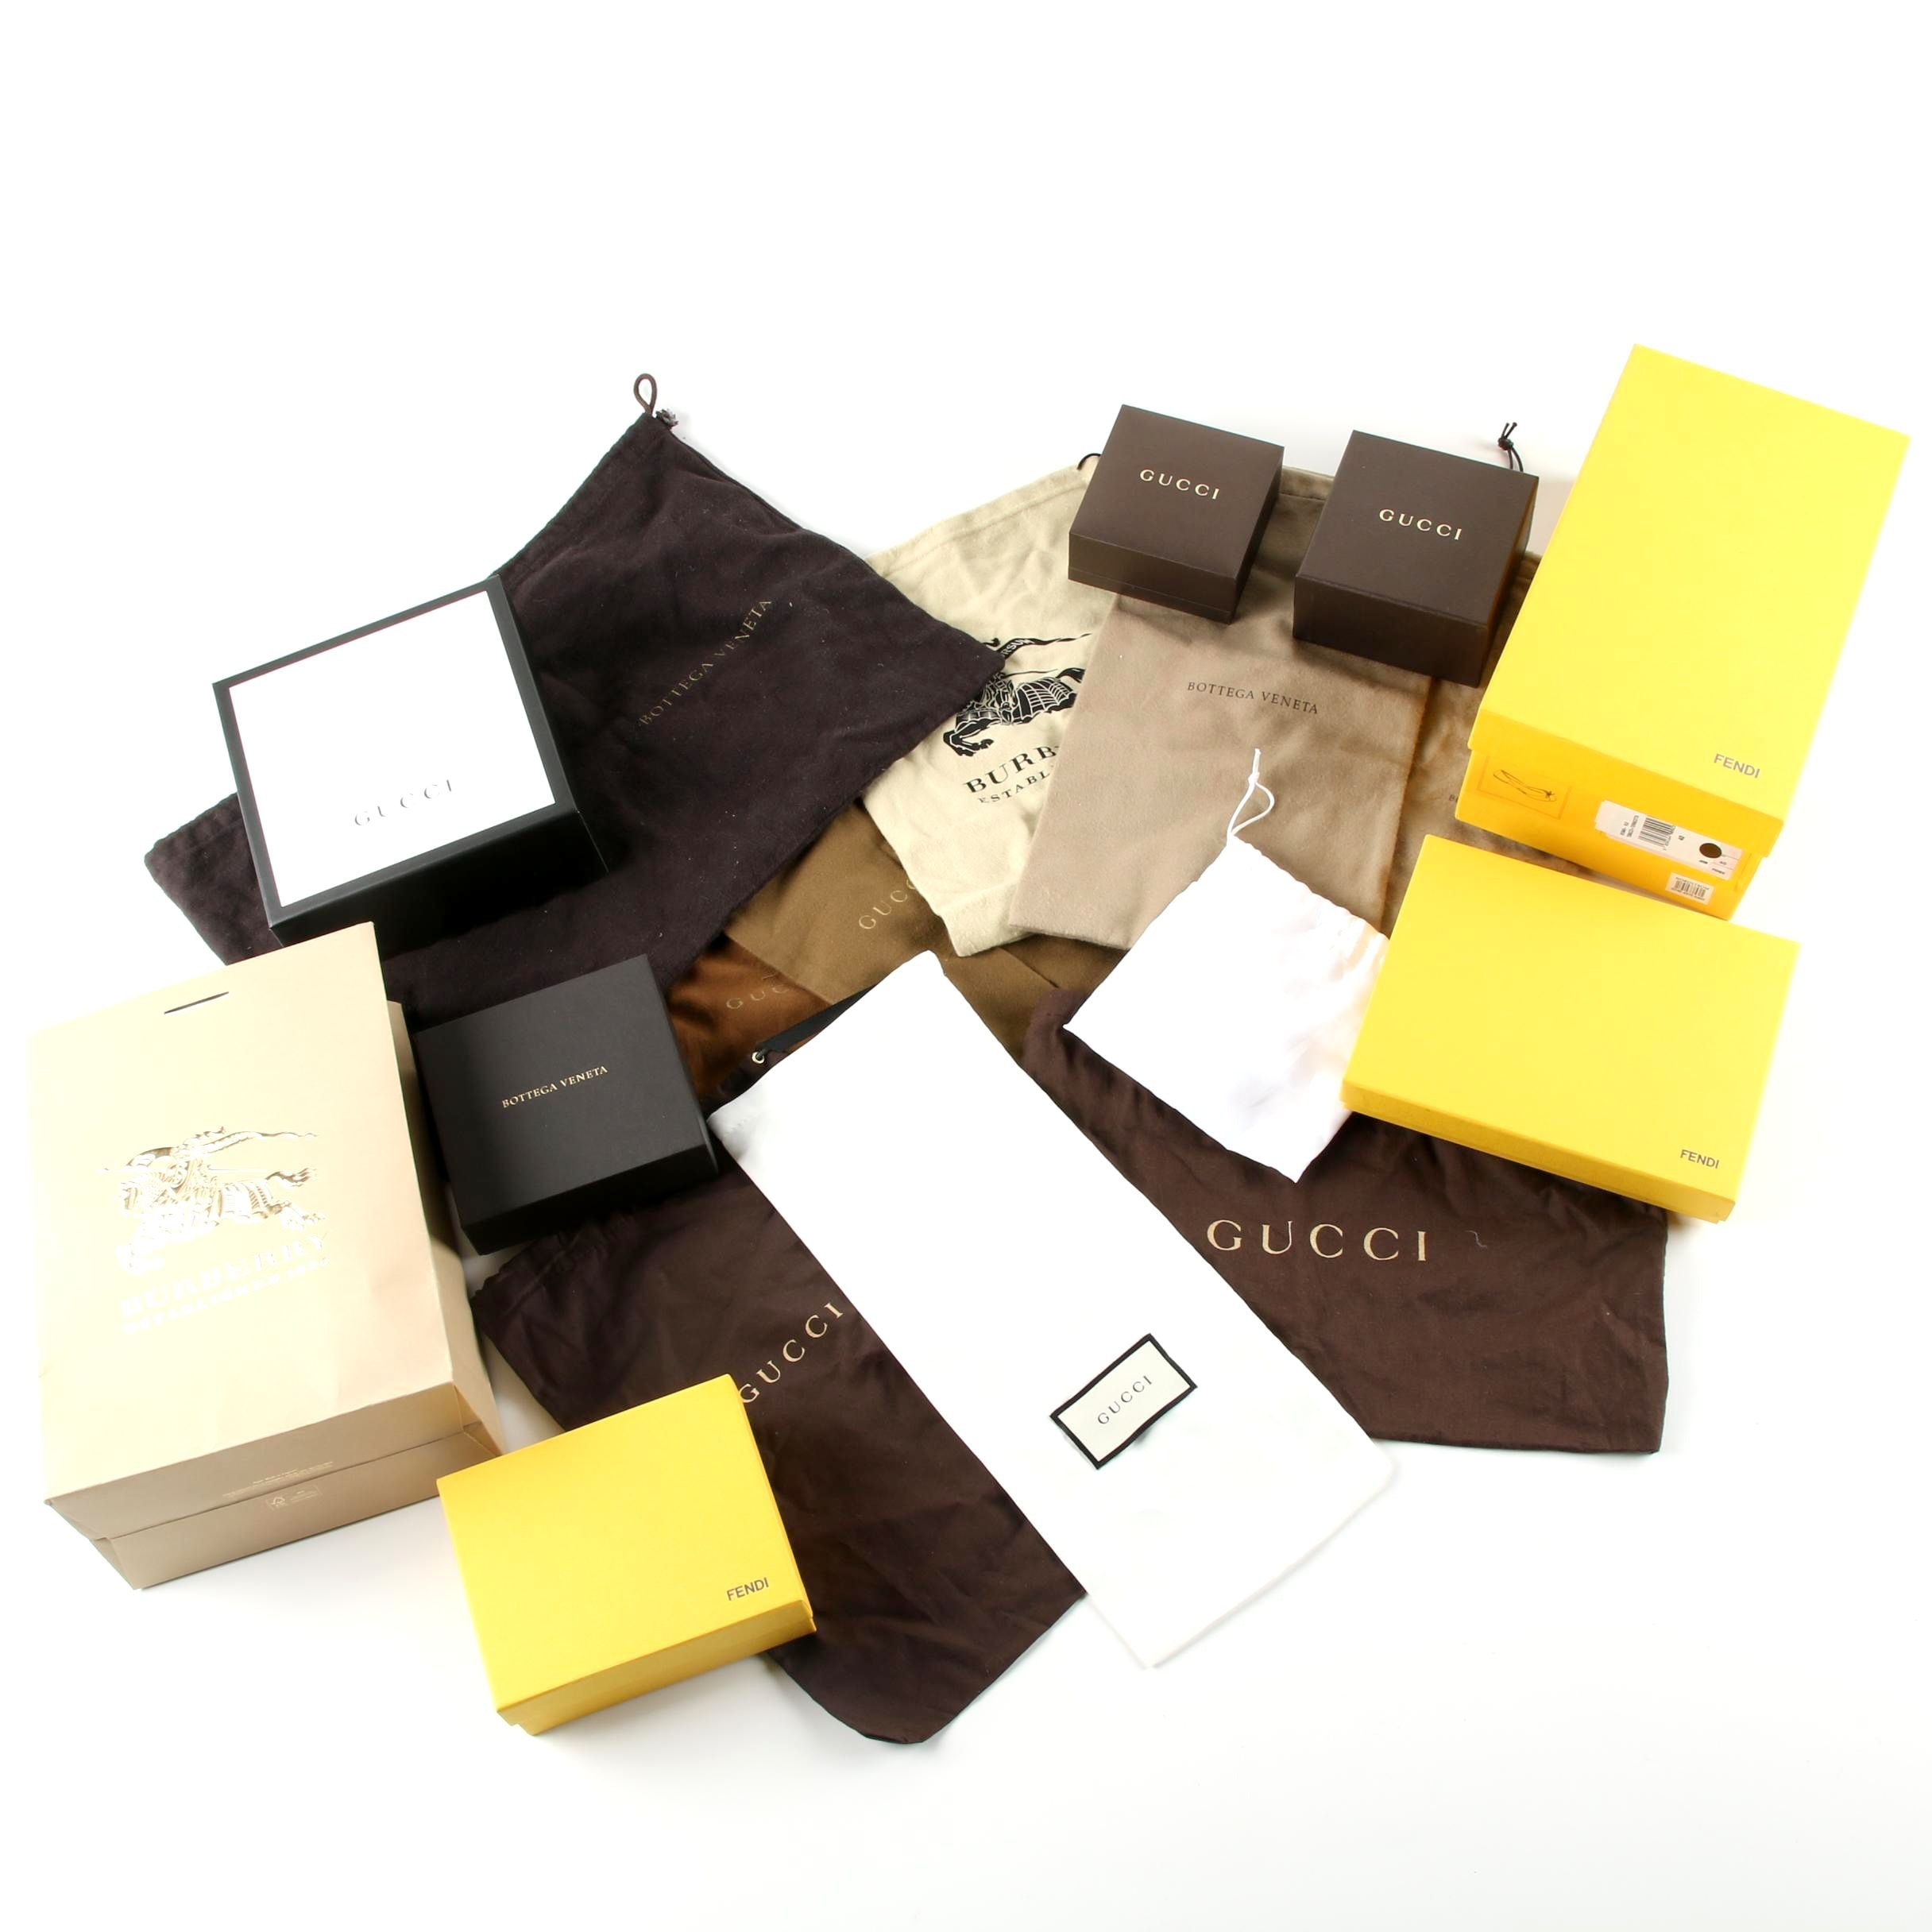 Designer Dust Covers, Boxes and Shopping Bags Including Gucci and Fendi